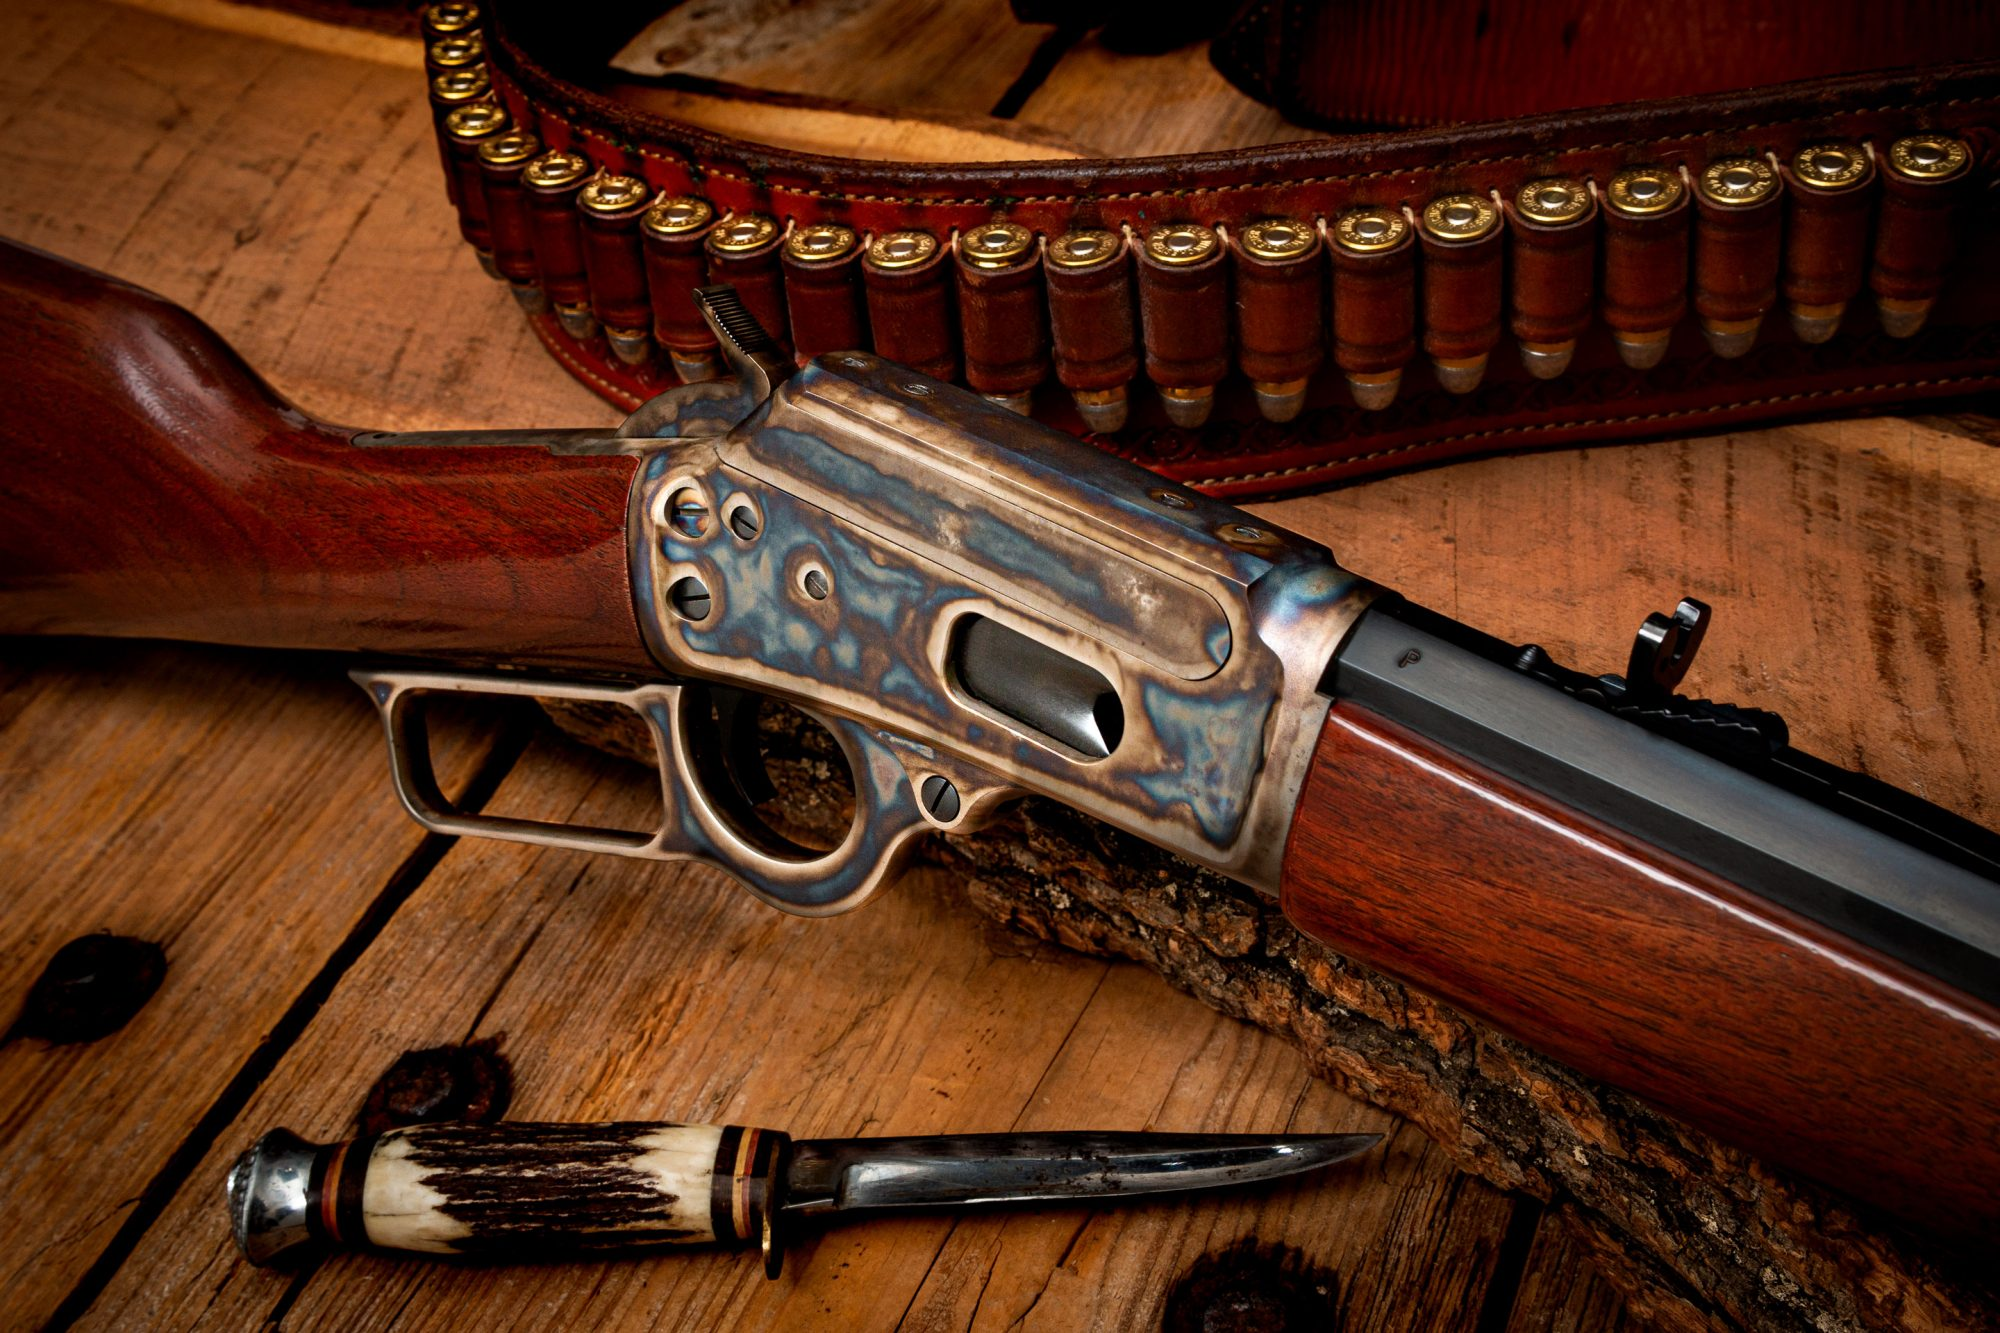 Photo of a Turnbull Finished Marlin 1894CB, featuring restoration grade metal and wood finishes by Turnbull Restoration of Bloomfield, NY